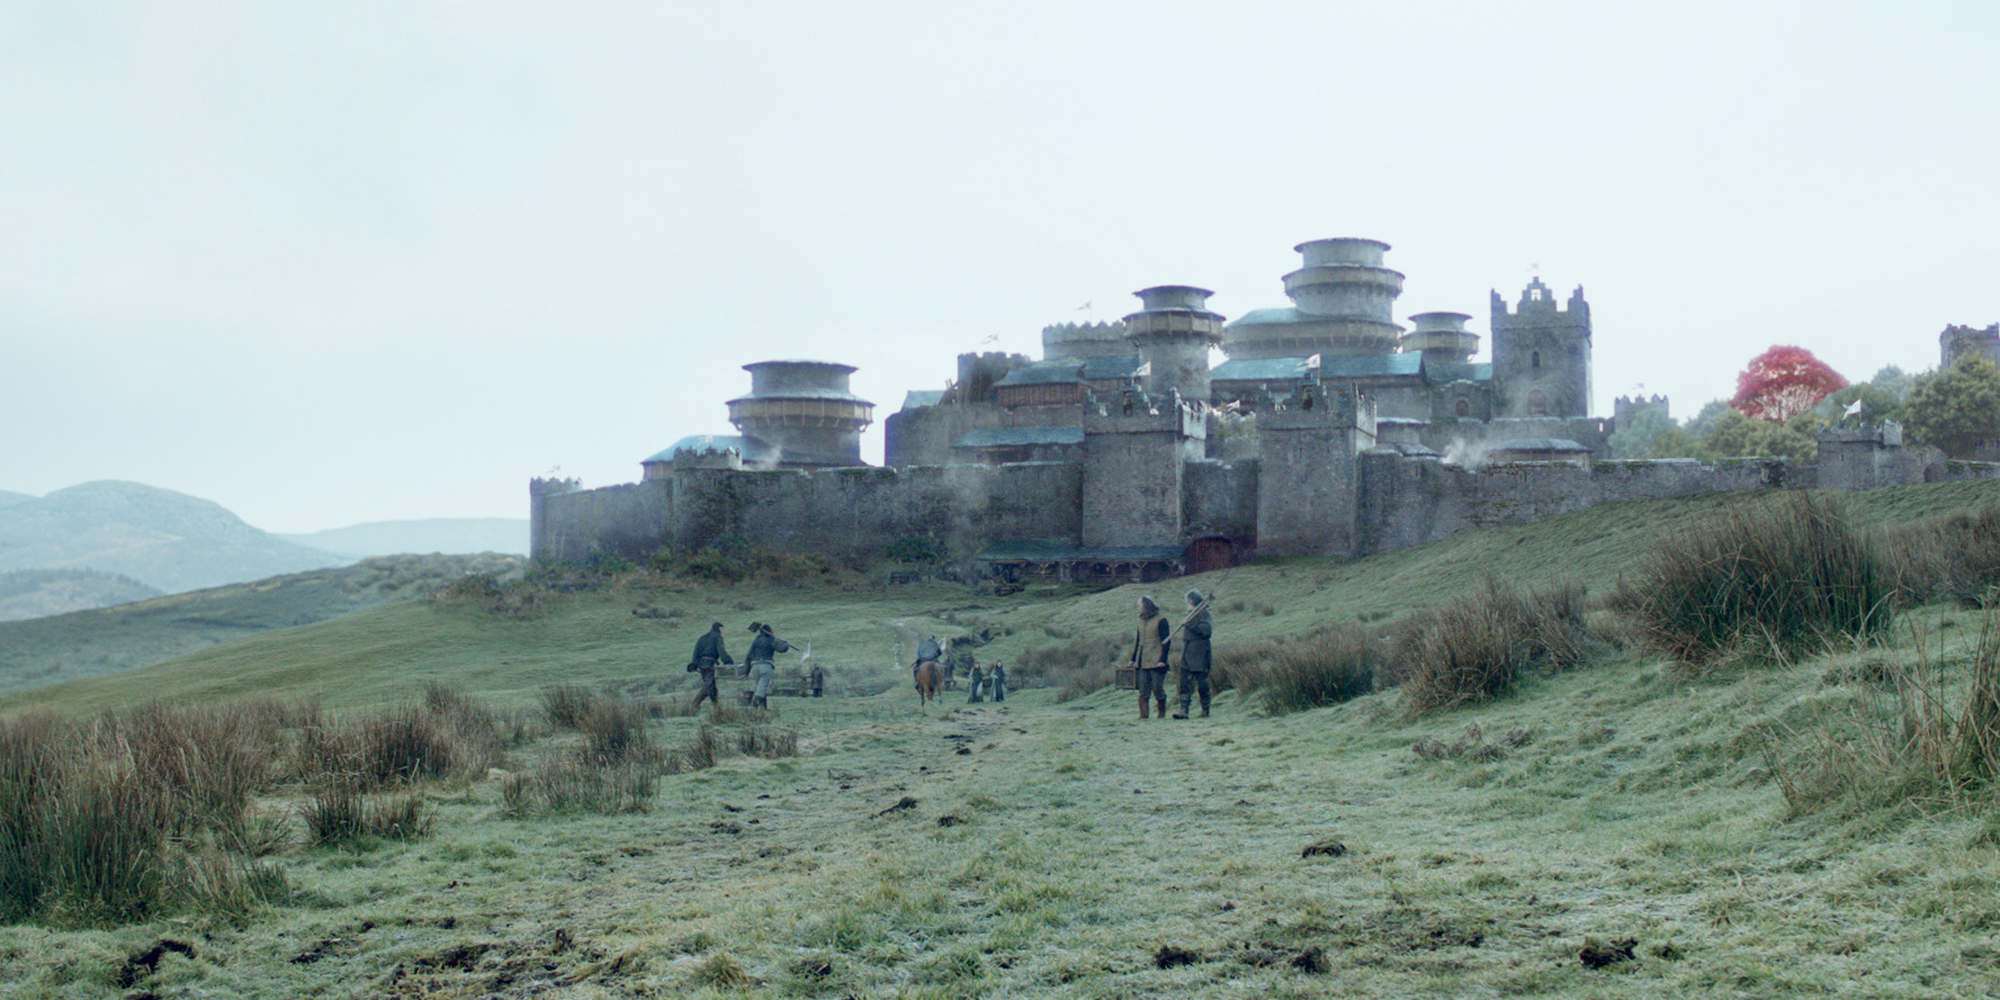 Game Of Thrones Locations on winter is coming, harry lloyd, iain glen, mark addy, rory mccann, nikolaj coster waldau, richard madden, once upon a time, a game of thrones, a song of ice and fire, game of thrones - season 2, sophie turner, the walking dead, sean bean, aidan gillen, lena headey, jason momoa, true blood, game of thrones - season 1,